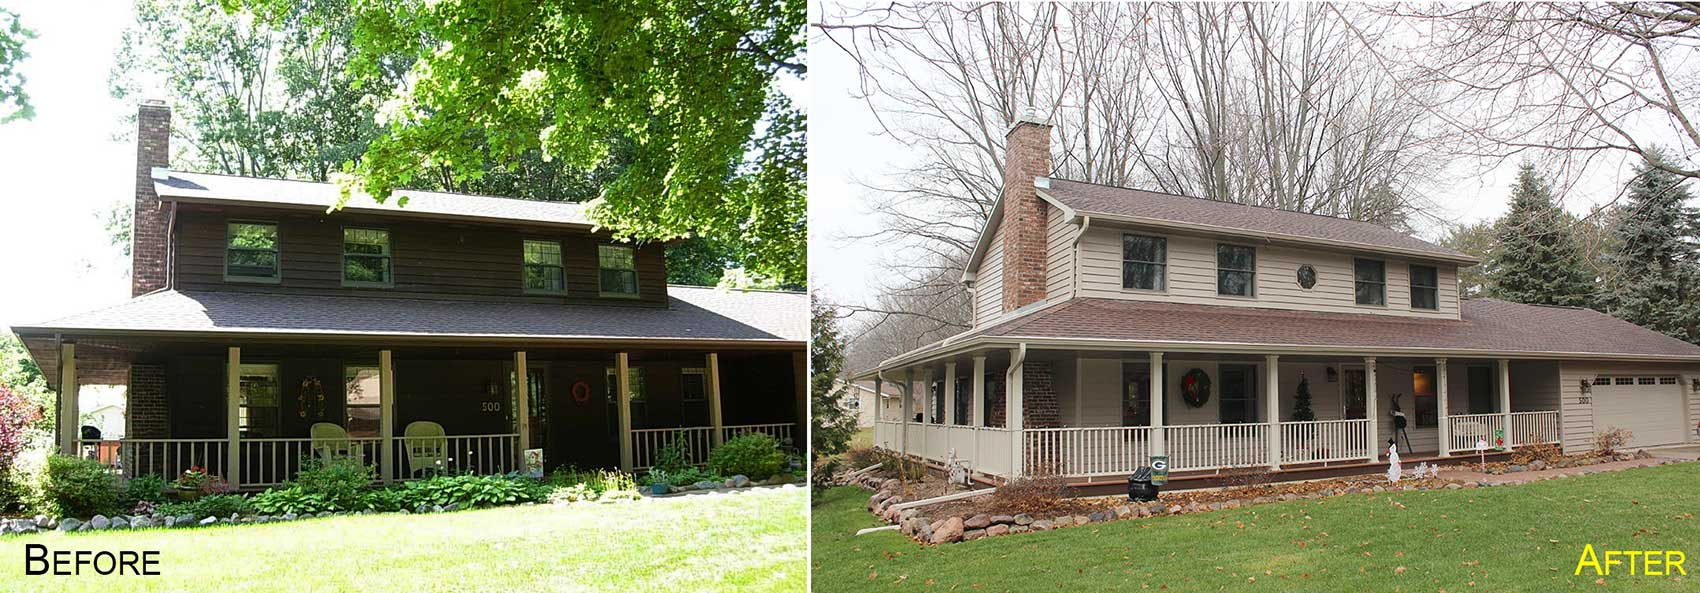 Green Bay Home Builders, Home Builders In The Fox Valley, Oshkosh Home  Builders,. Exterior Home Remodel ...